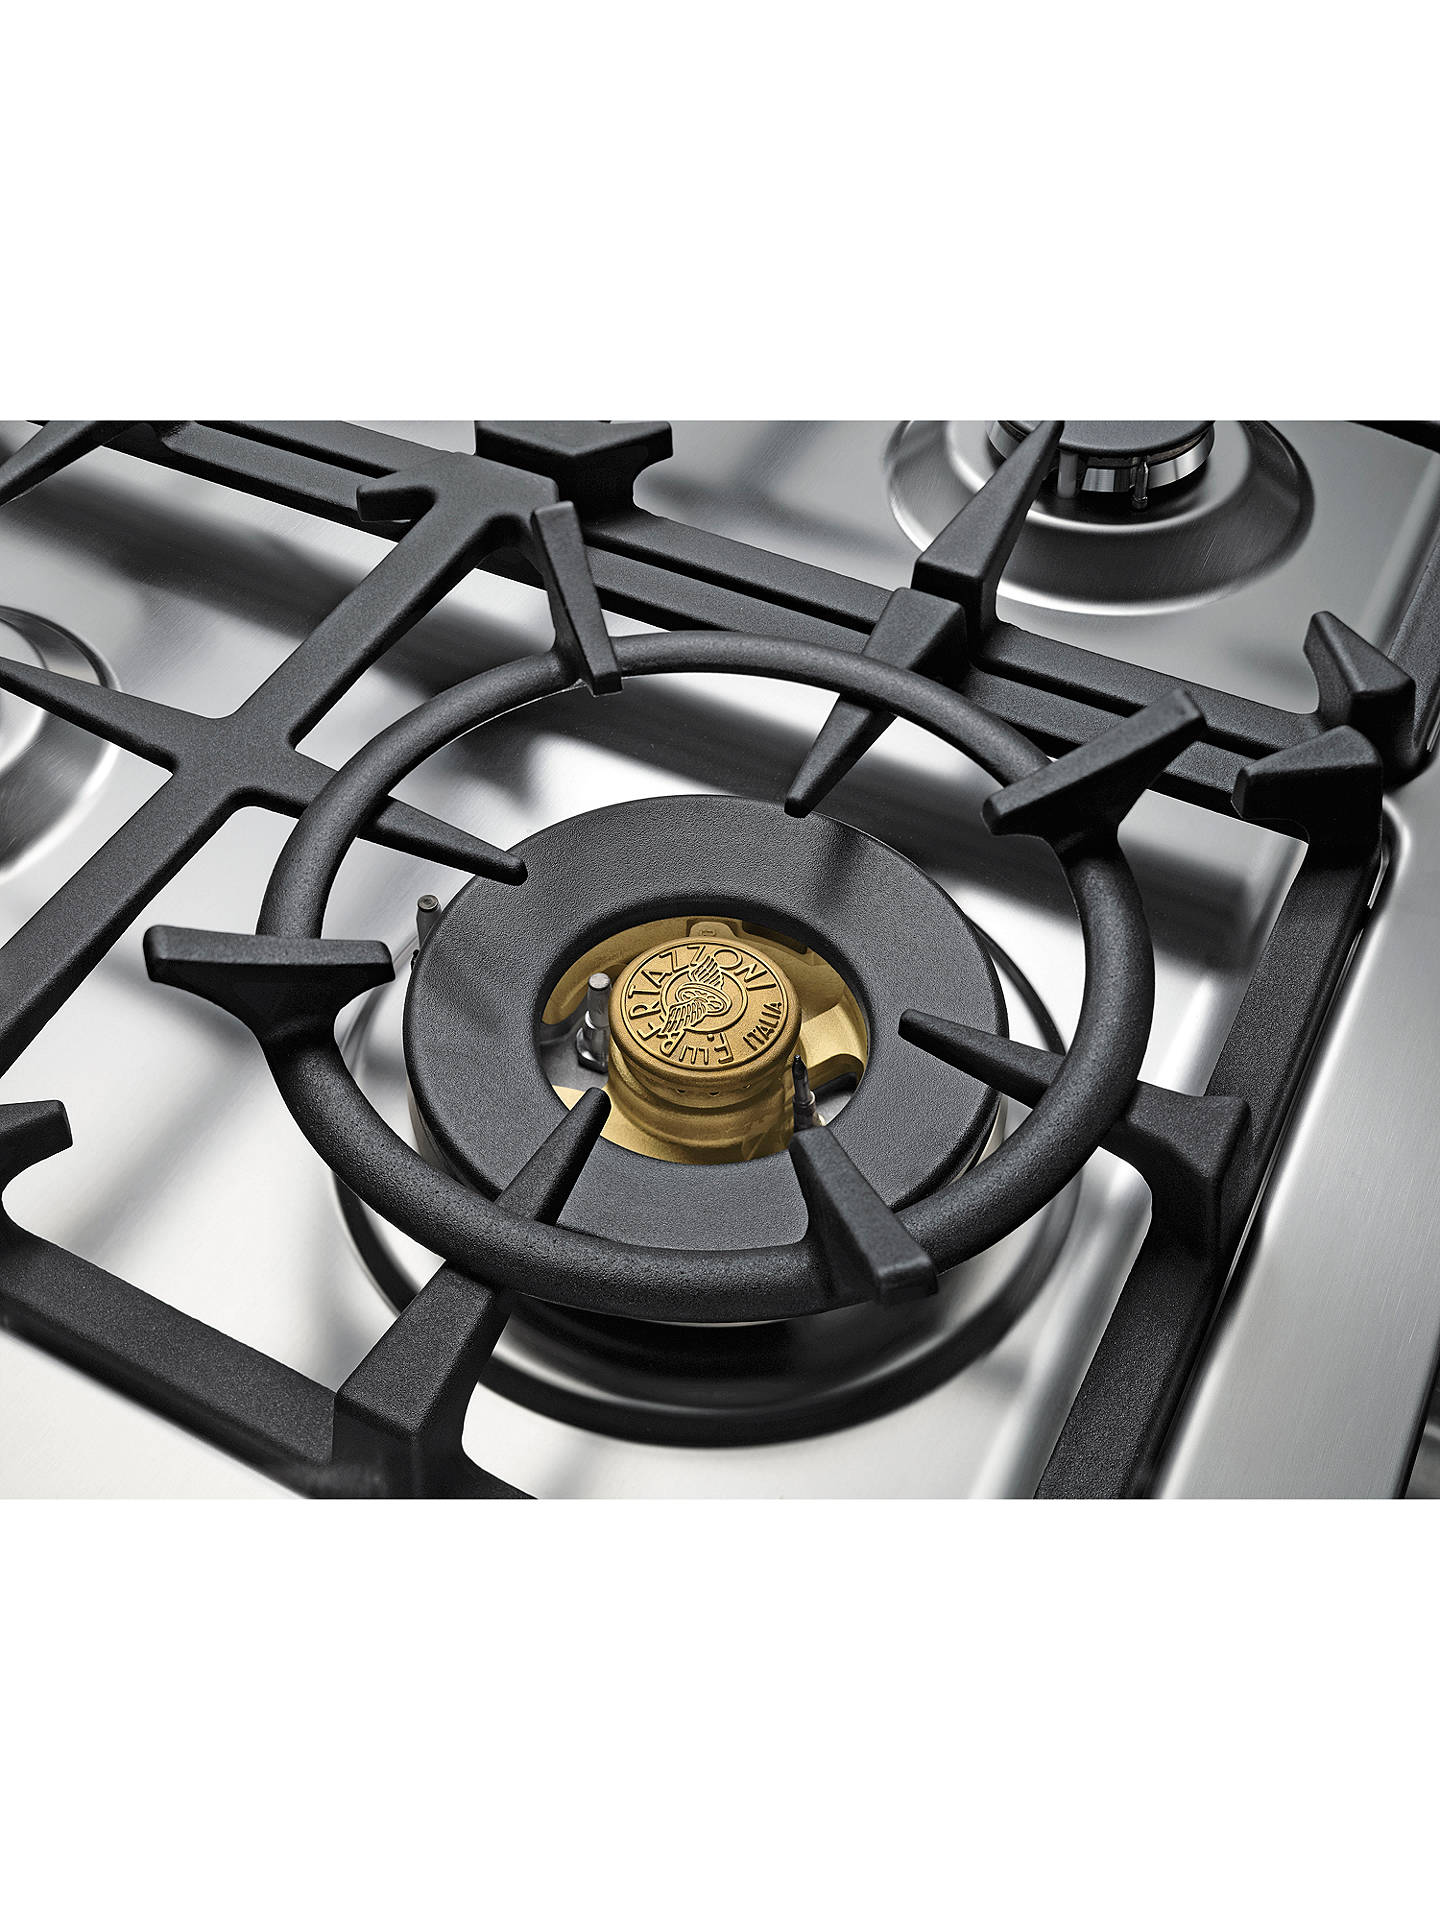 BuyBertazzoni Professional Series 110cm Dual Fuel Range Cooker, Black Online at johnlewis.com